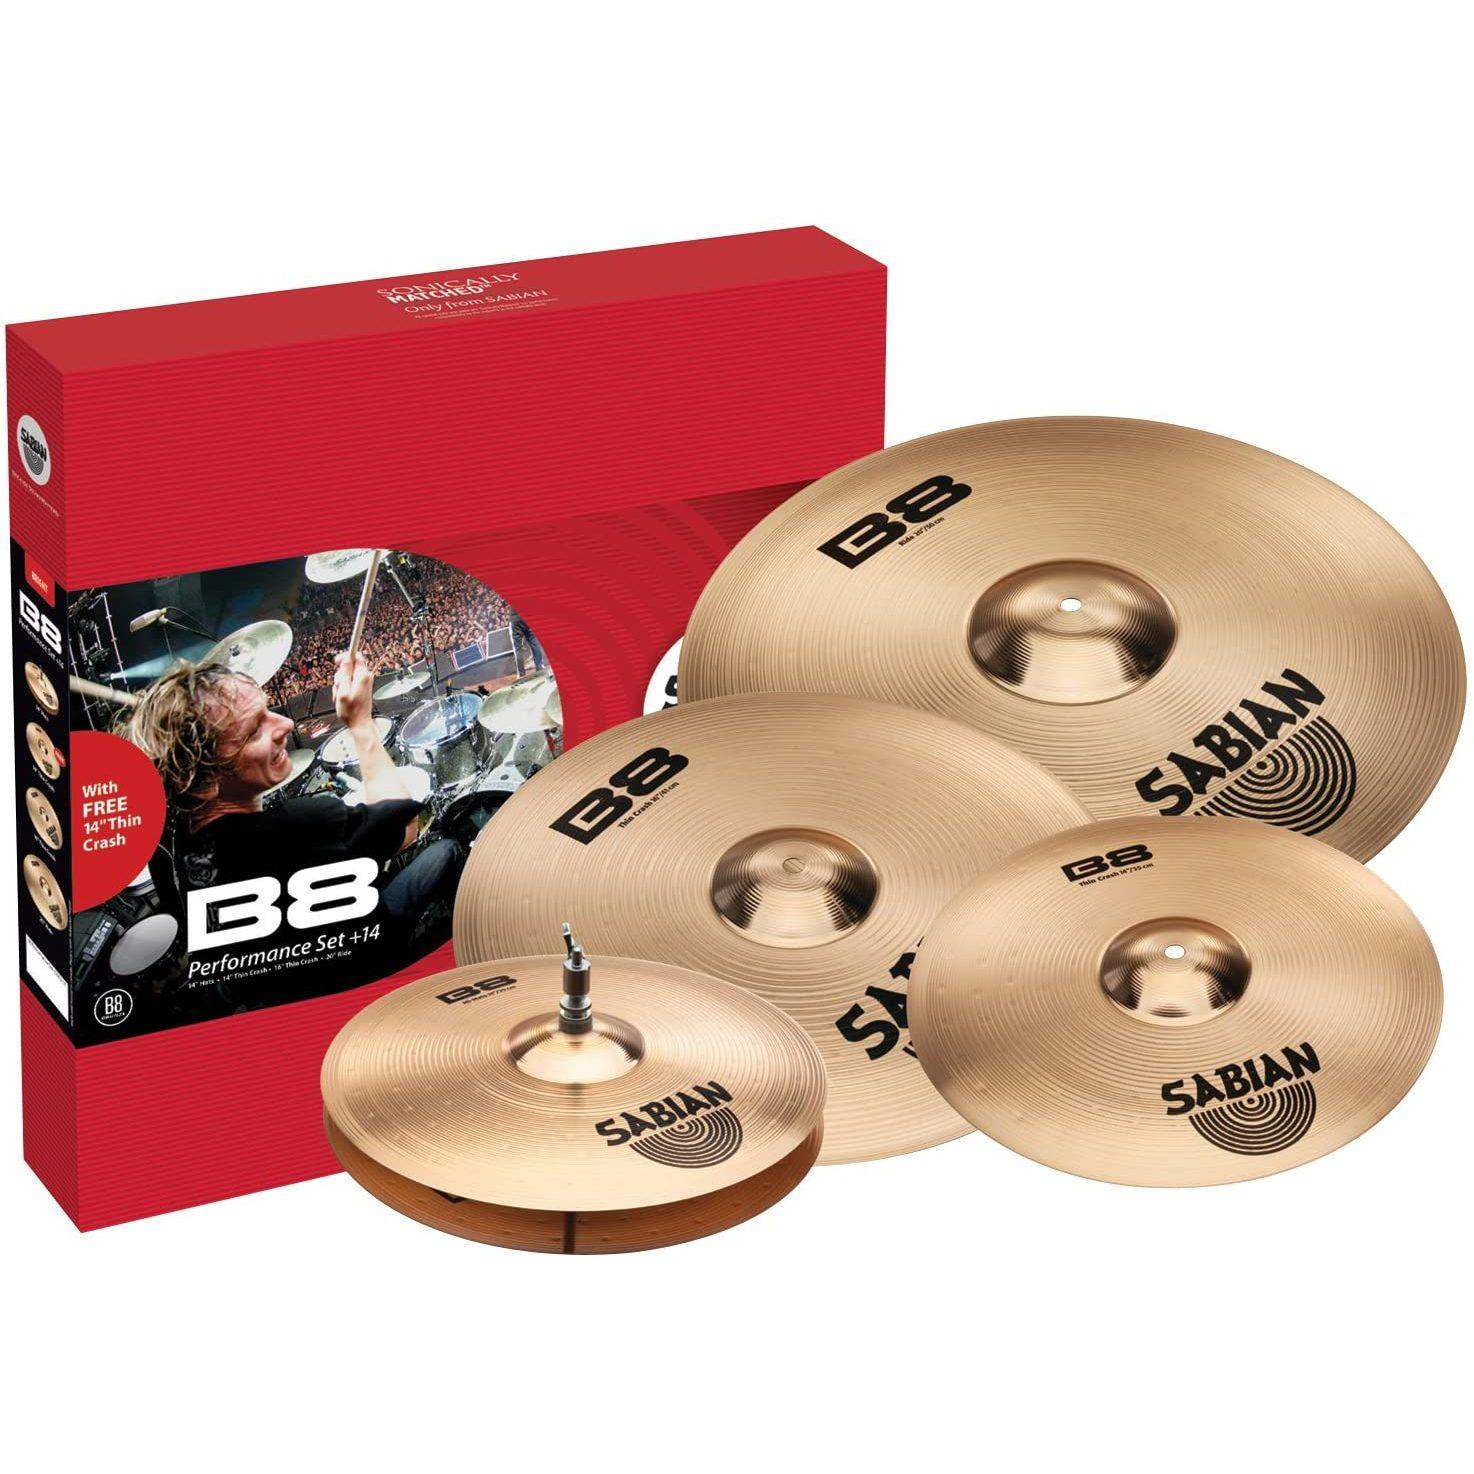 Комплект тарелок SABIAN 45003-14  Performance Set +14